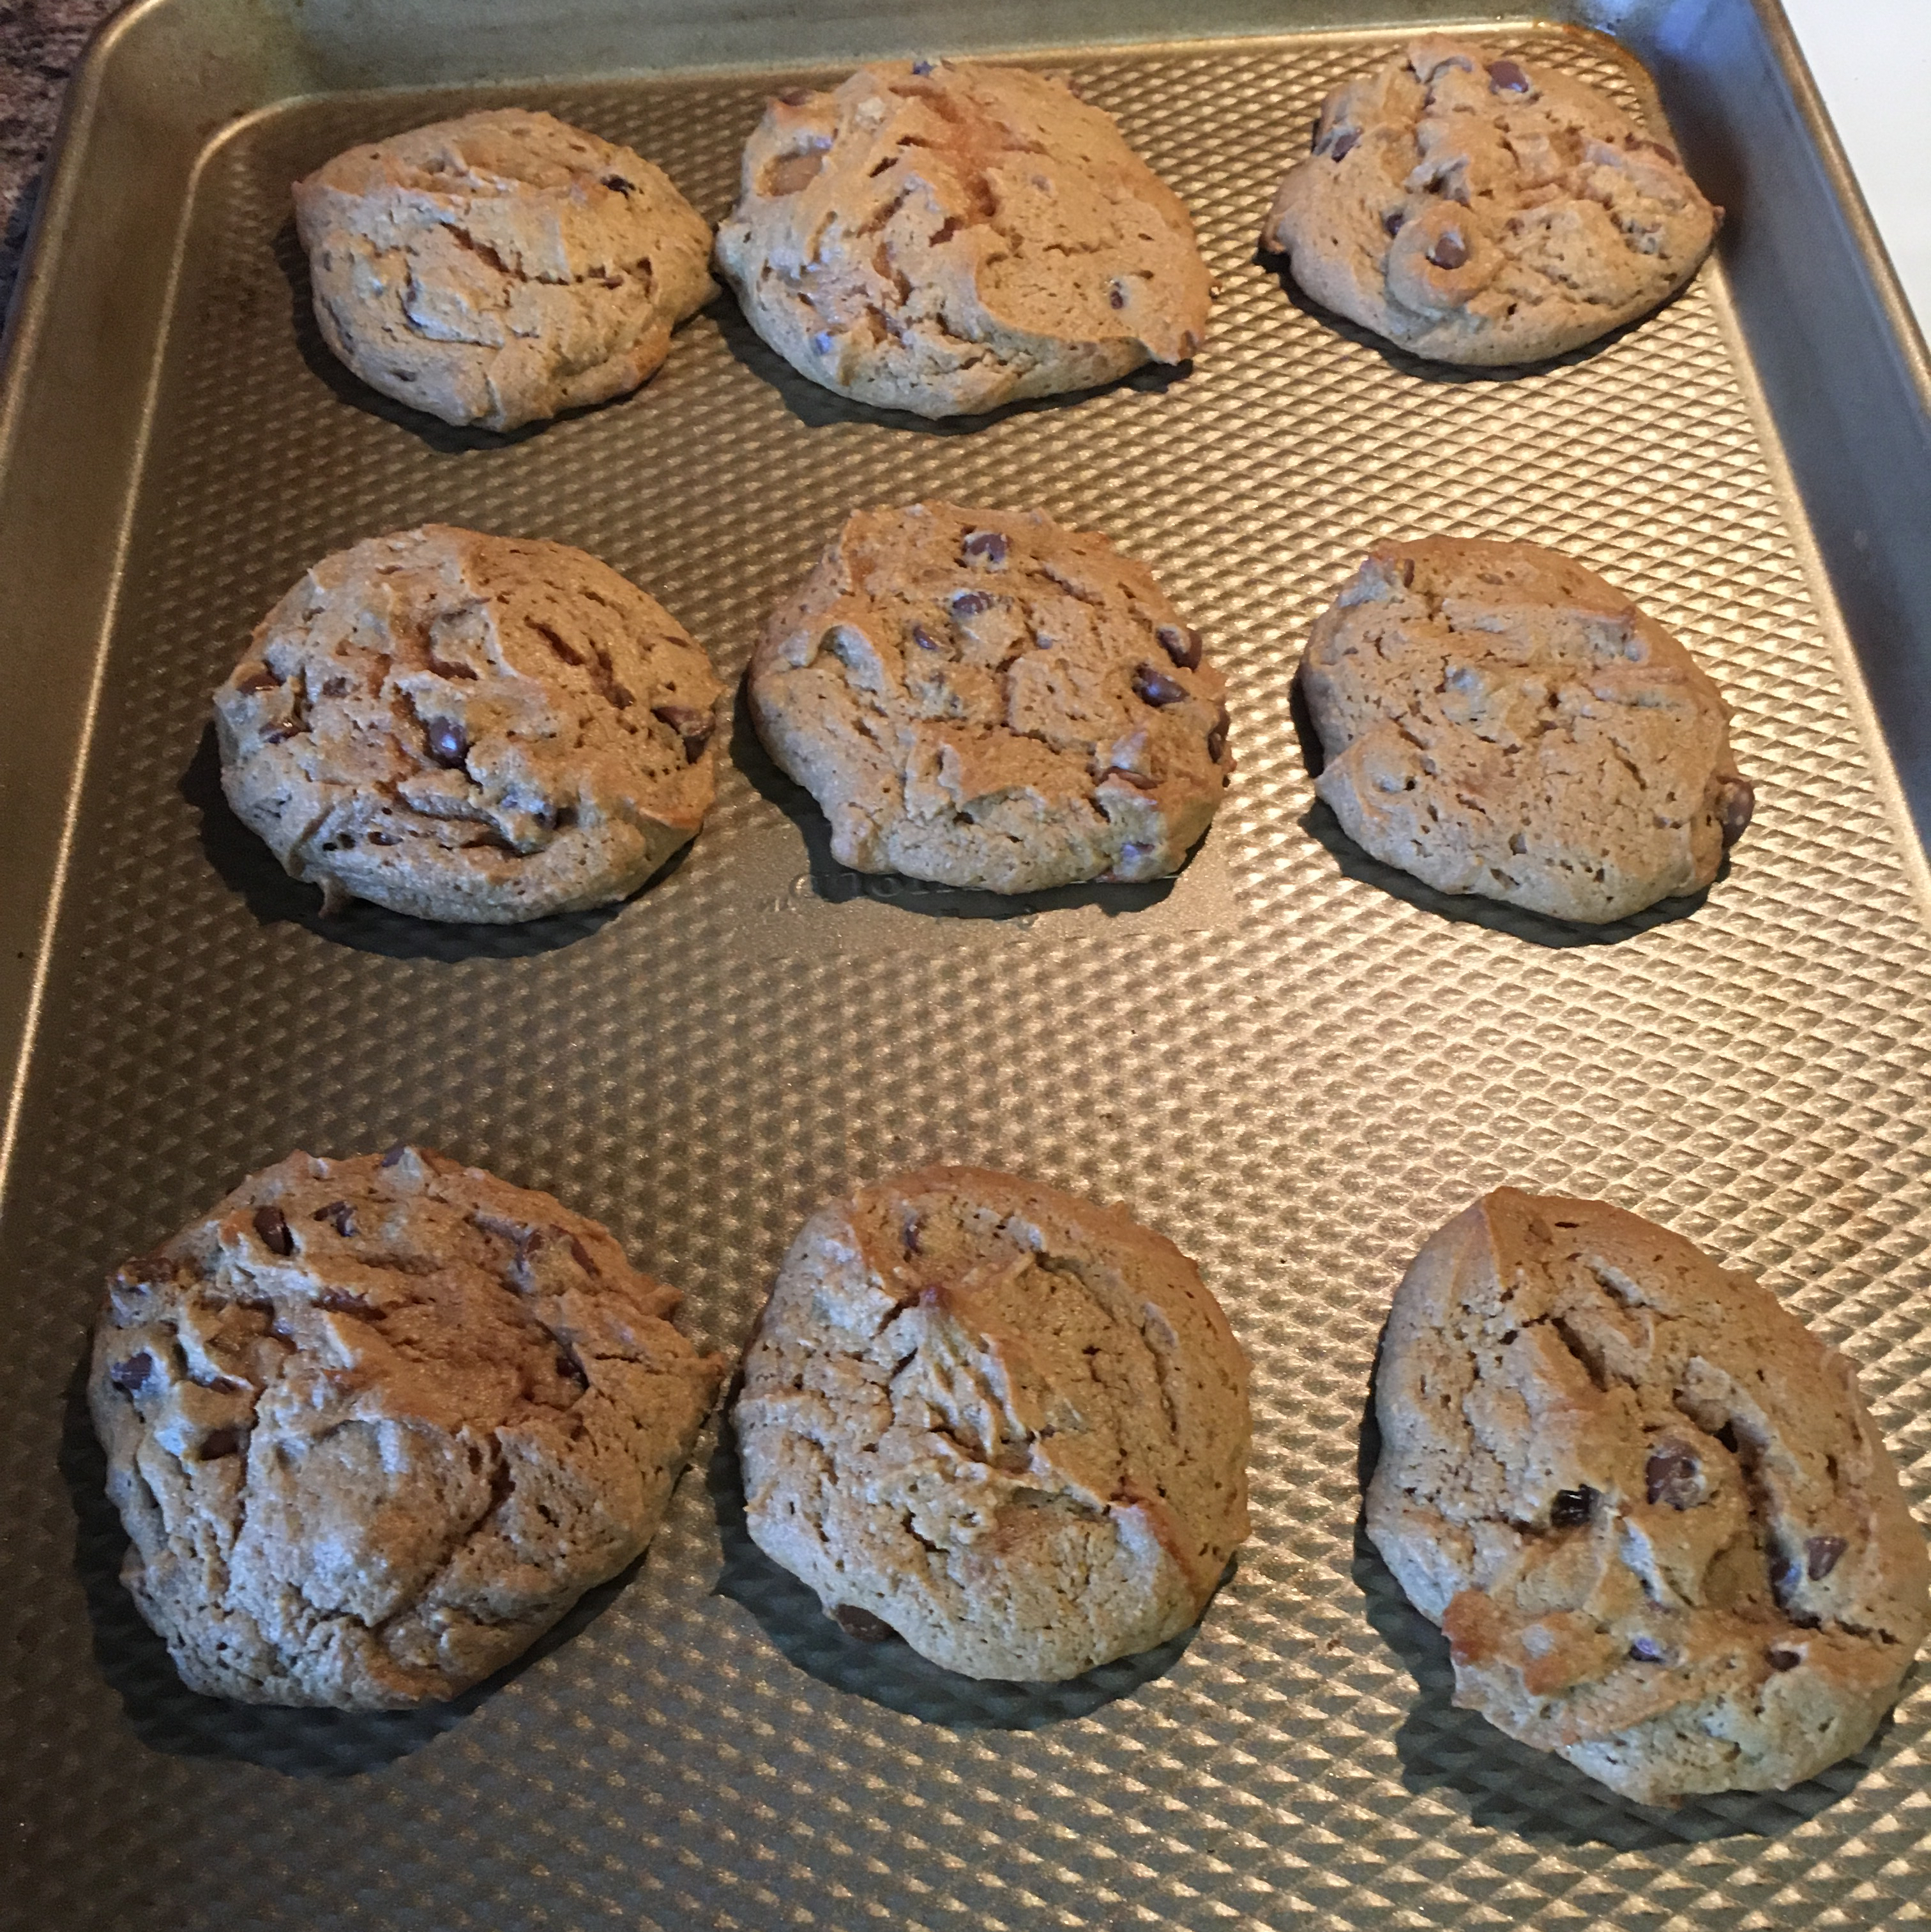 Daddy Cookies (Gluten- and Grain-Free Peanut Butter and Chocolate Chip Cookies) Christina Depue